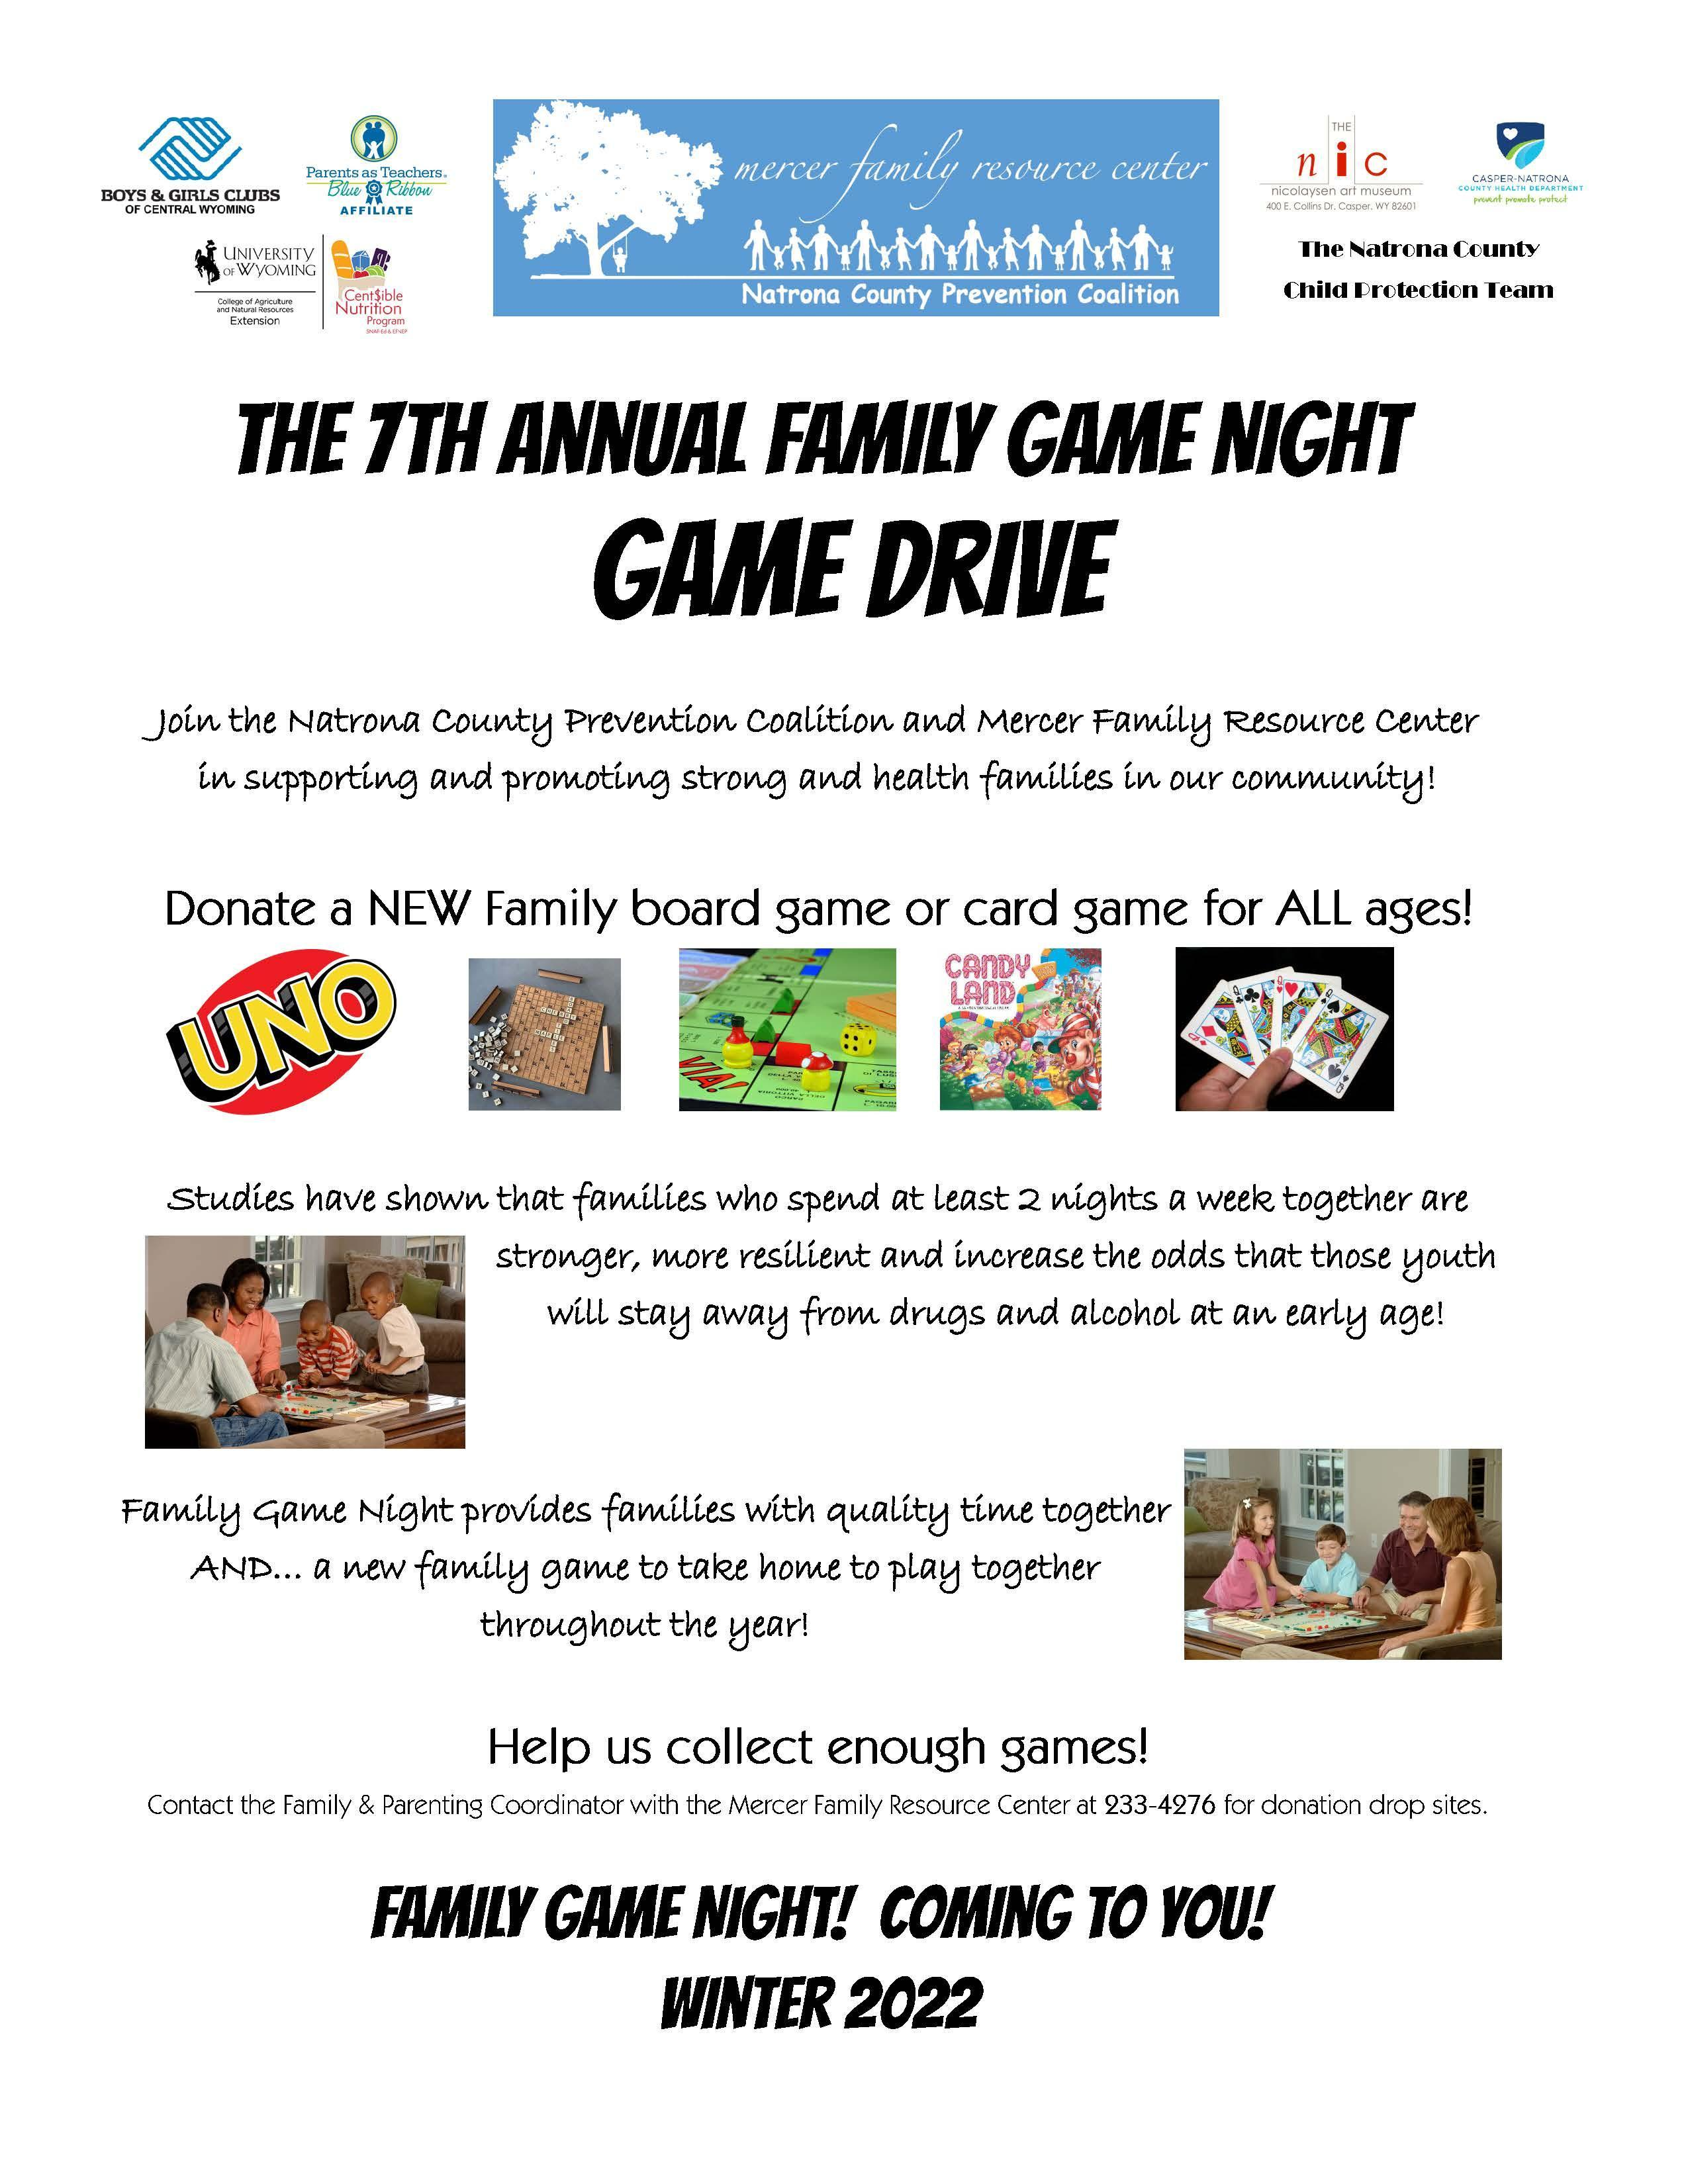 Family Game Night game drive flyer